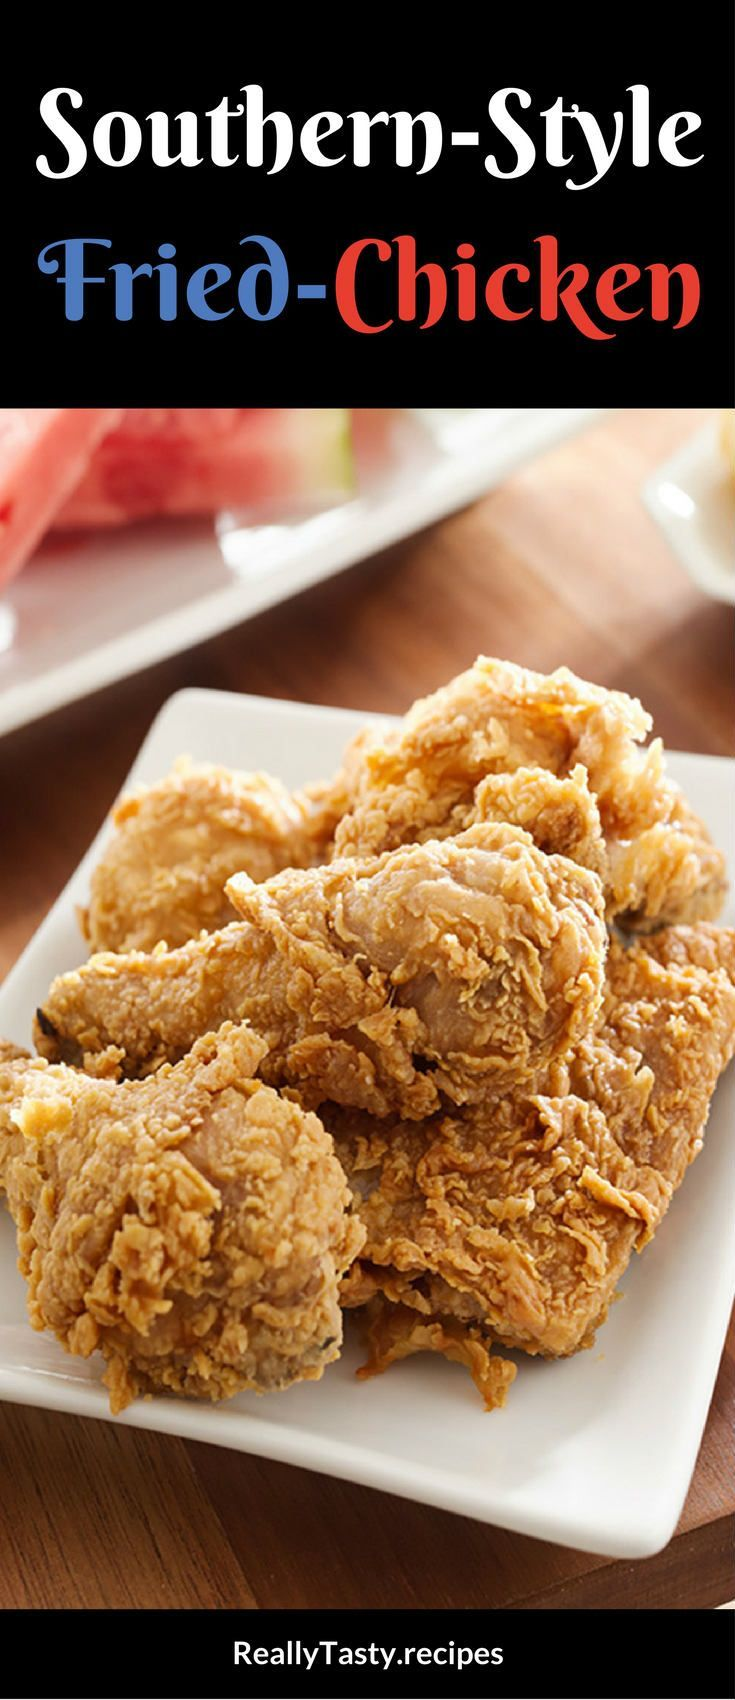 Colonel's Classic Southern Fried Chicken Recipe - Really Tasty Recipes